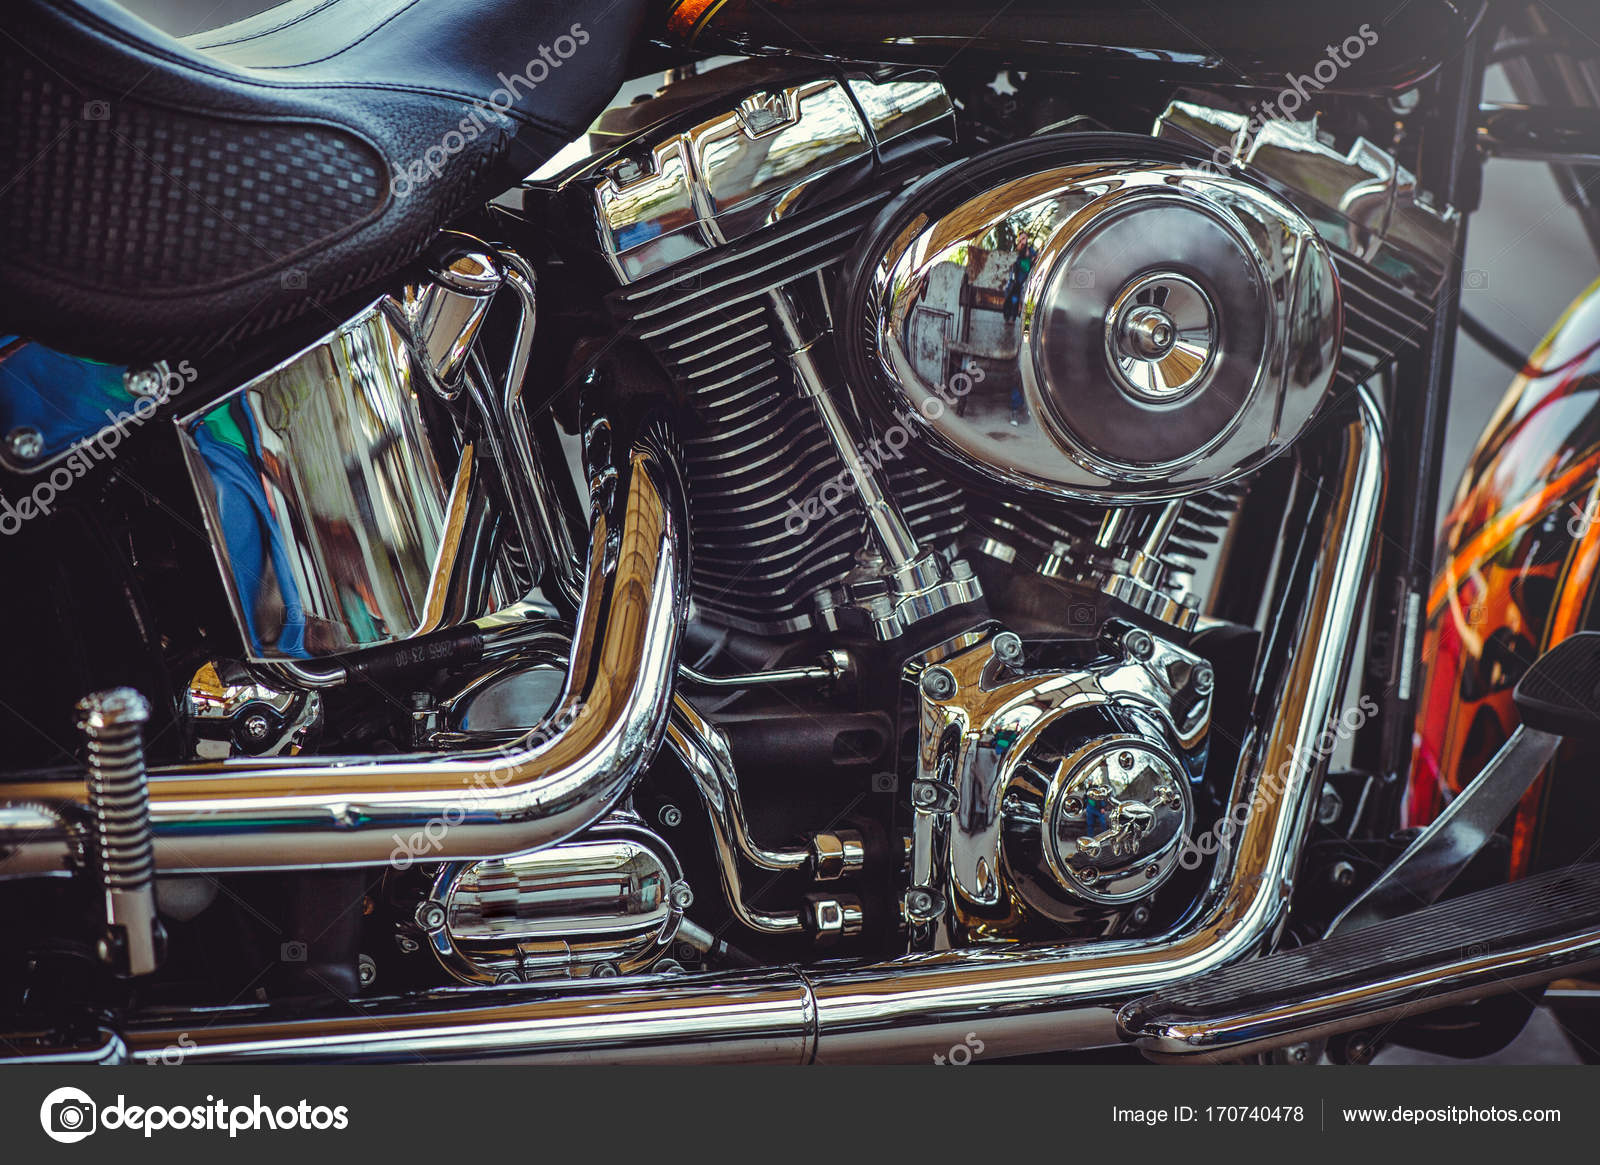 Beautiful chrome motor classic motorcycle, beautiful artistic processing  for the calendar flyer and advertising– stock image